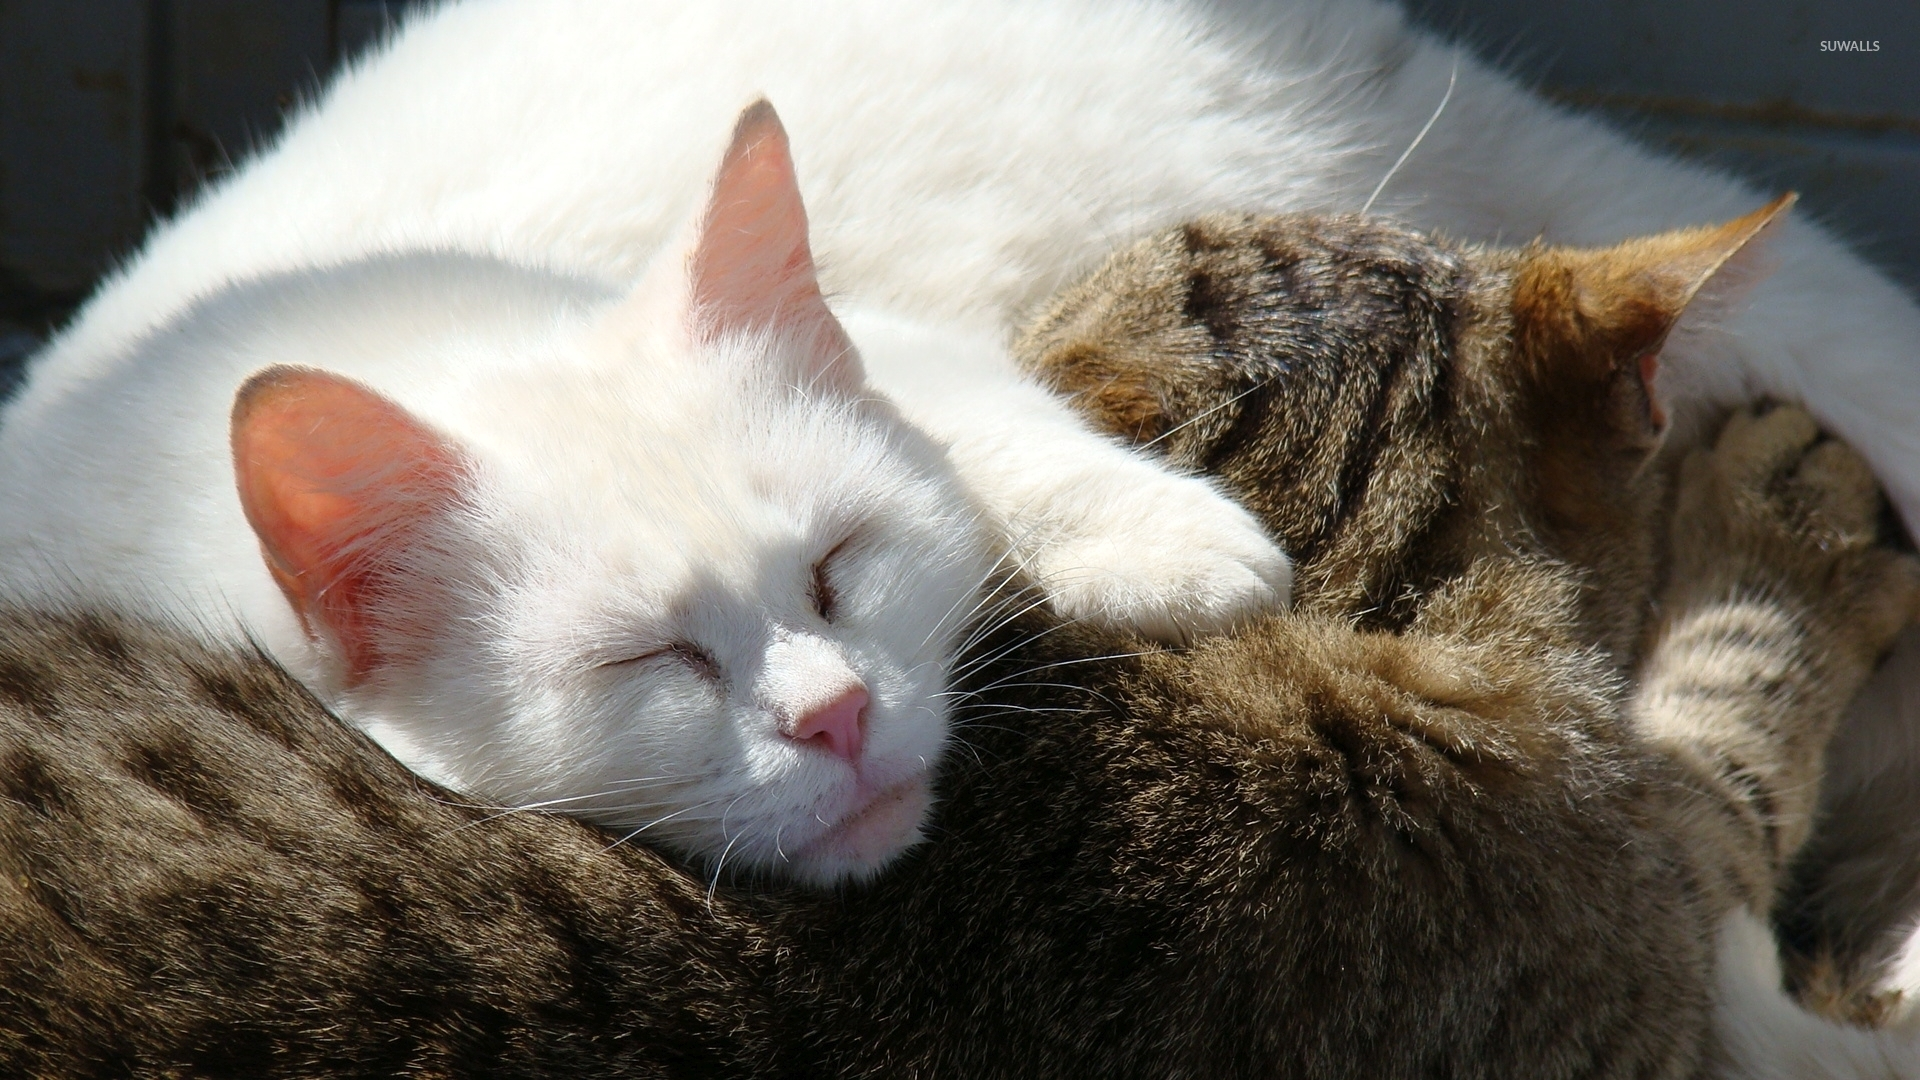 white cat sleeping on a gray cat wallpaper - animal wallpapers